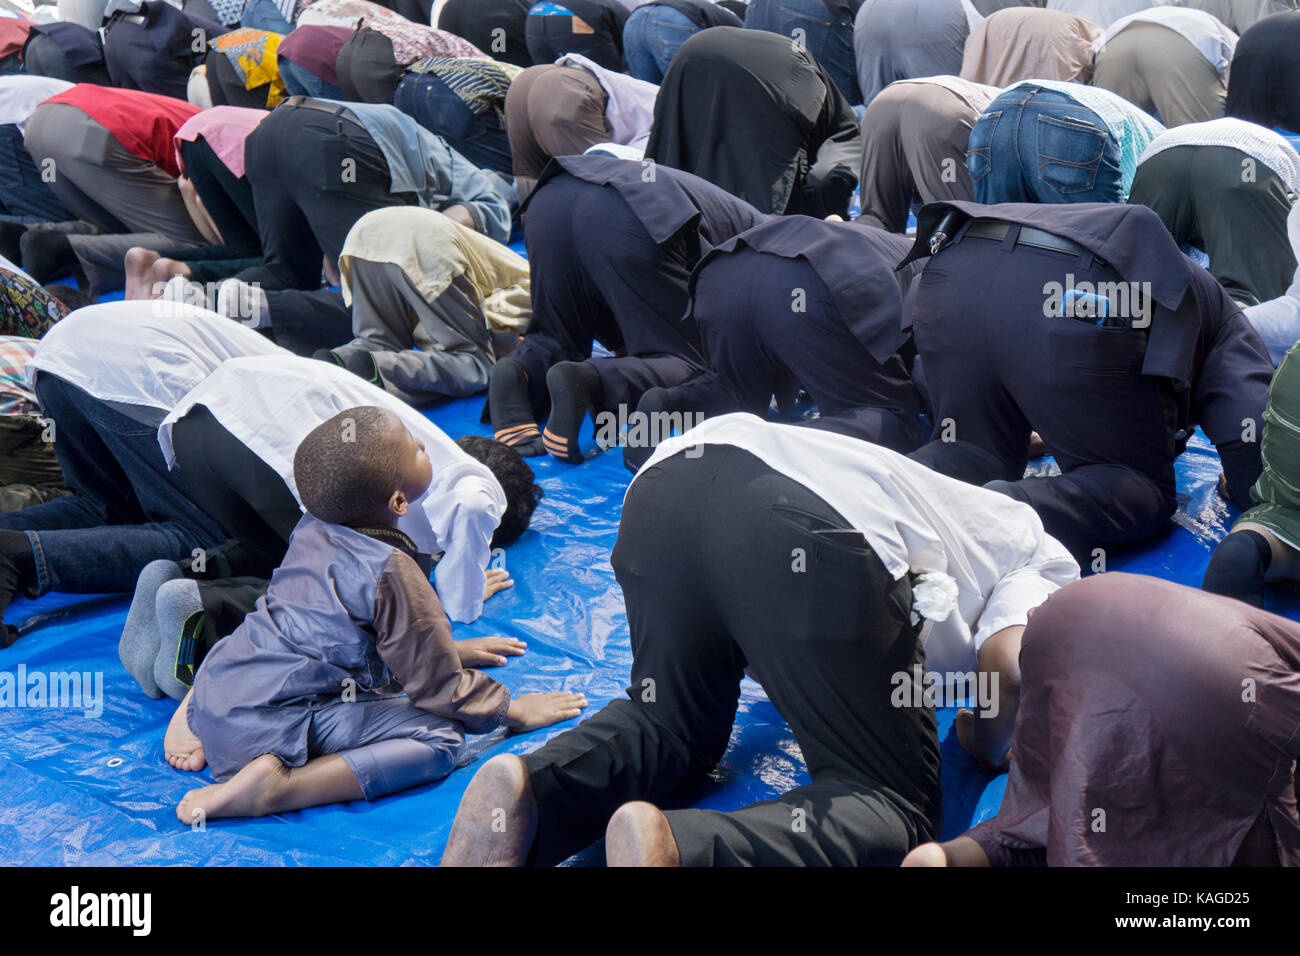 A young boy at prayers at the Muslim Day Parade in Midtown Manhattan, New York City. - Stock Image